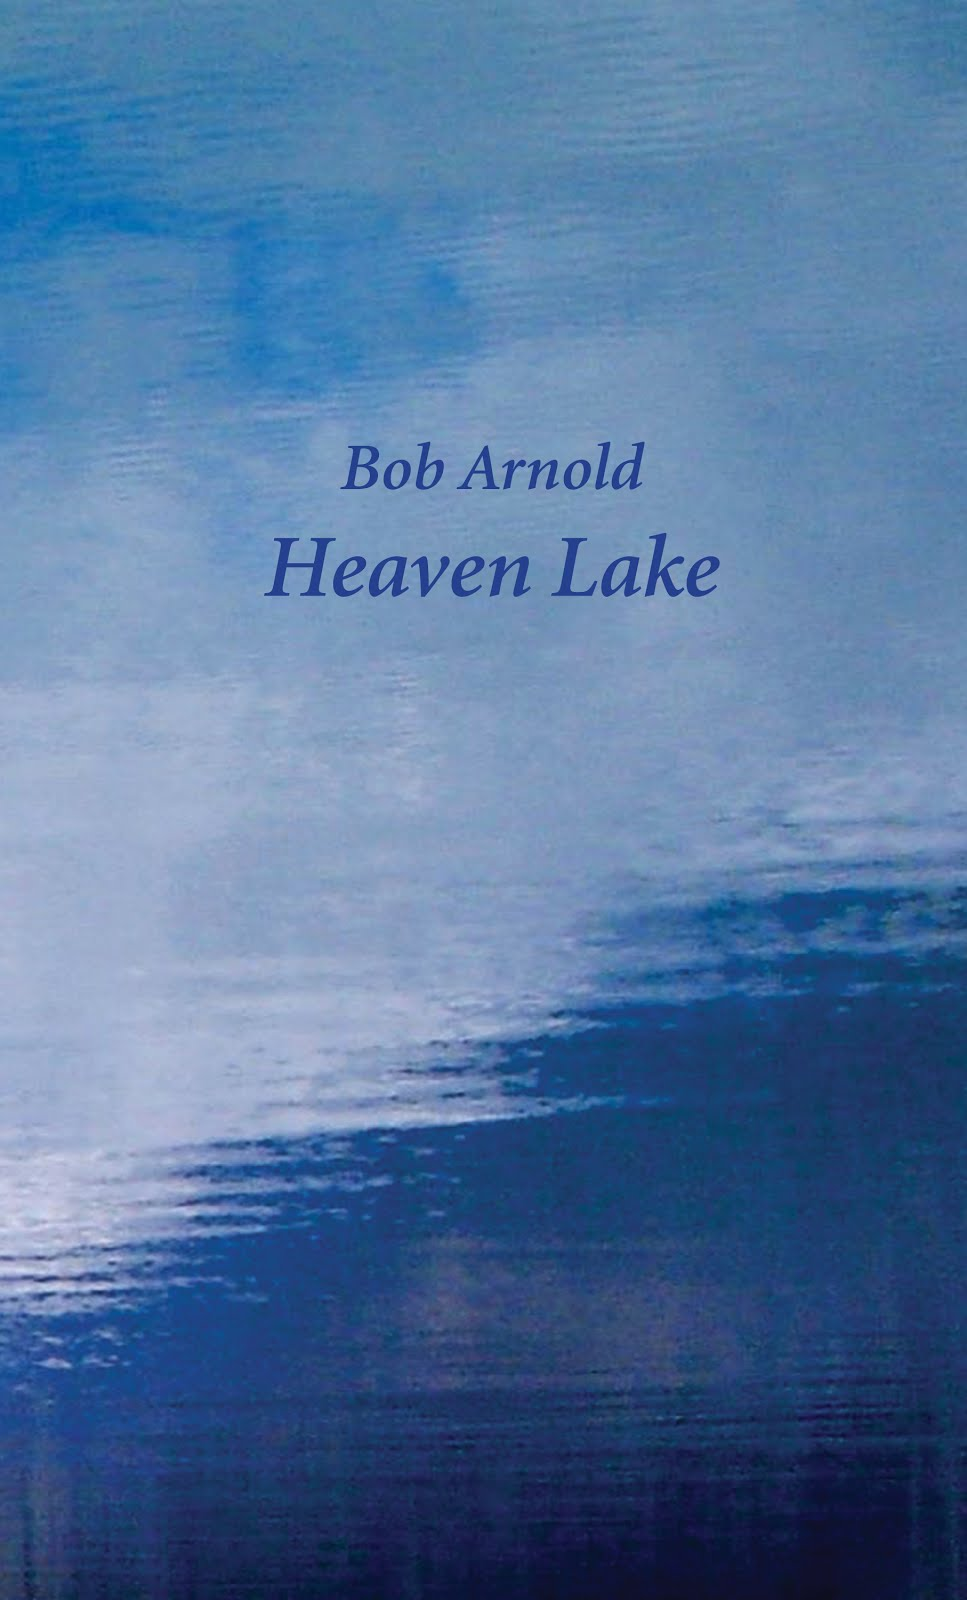 Heaven Lake by Bob Arnold